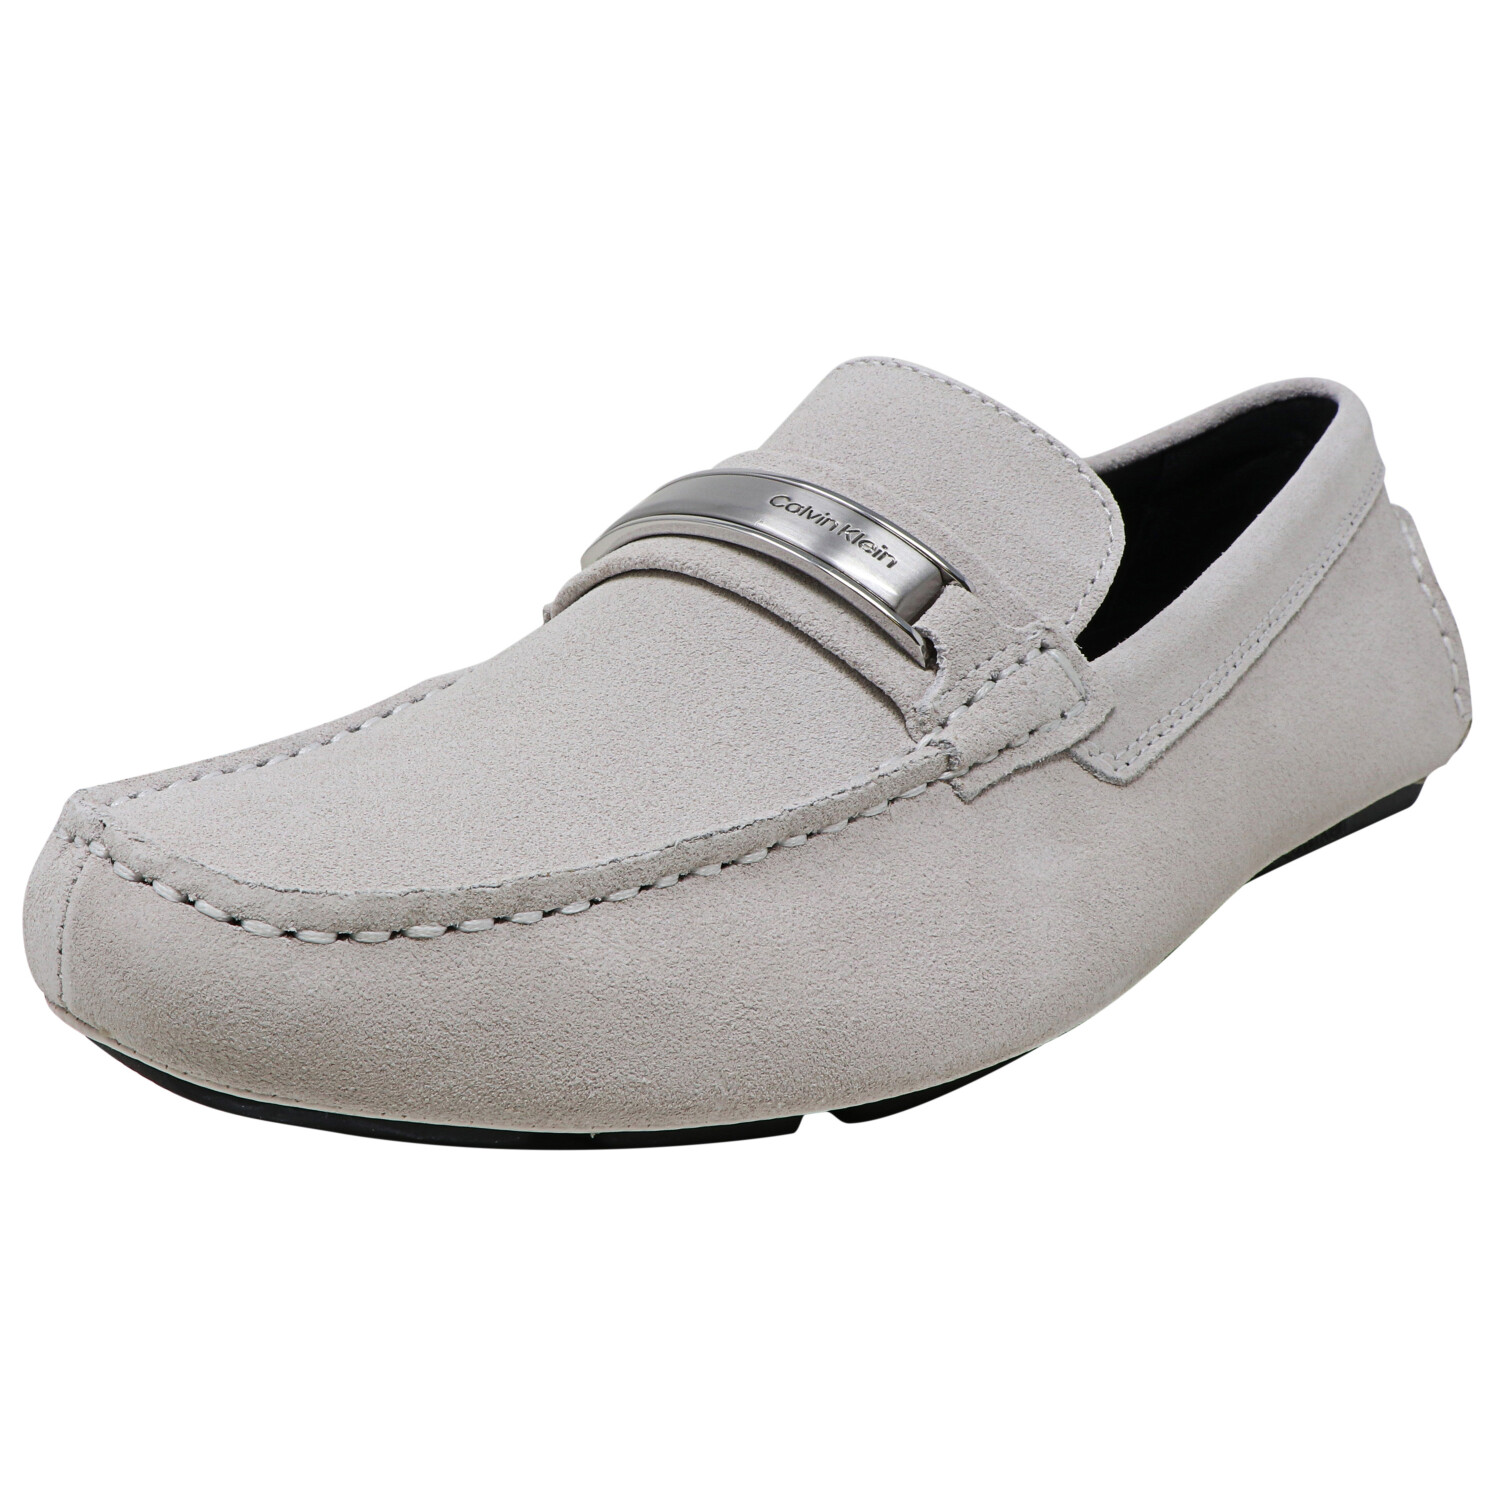 Calvin Klein Men's Merle Silky Suede White Ankle-High Loafers & Slip-On - 13M